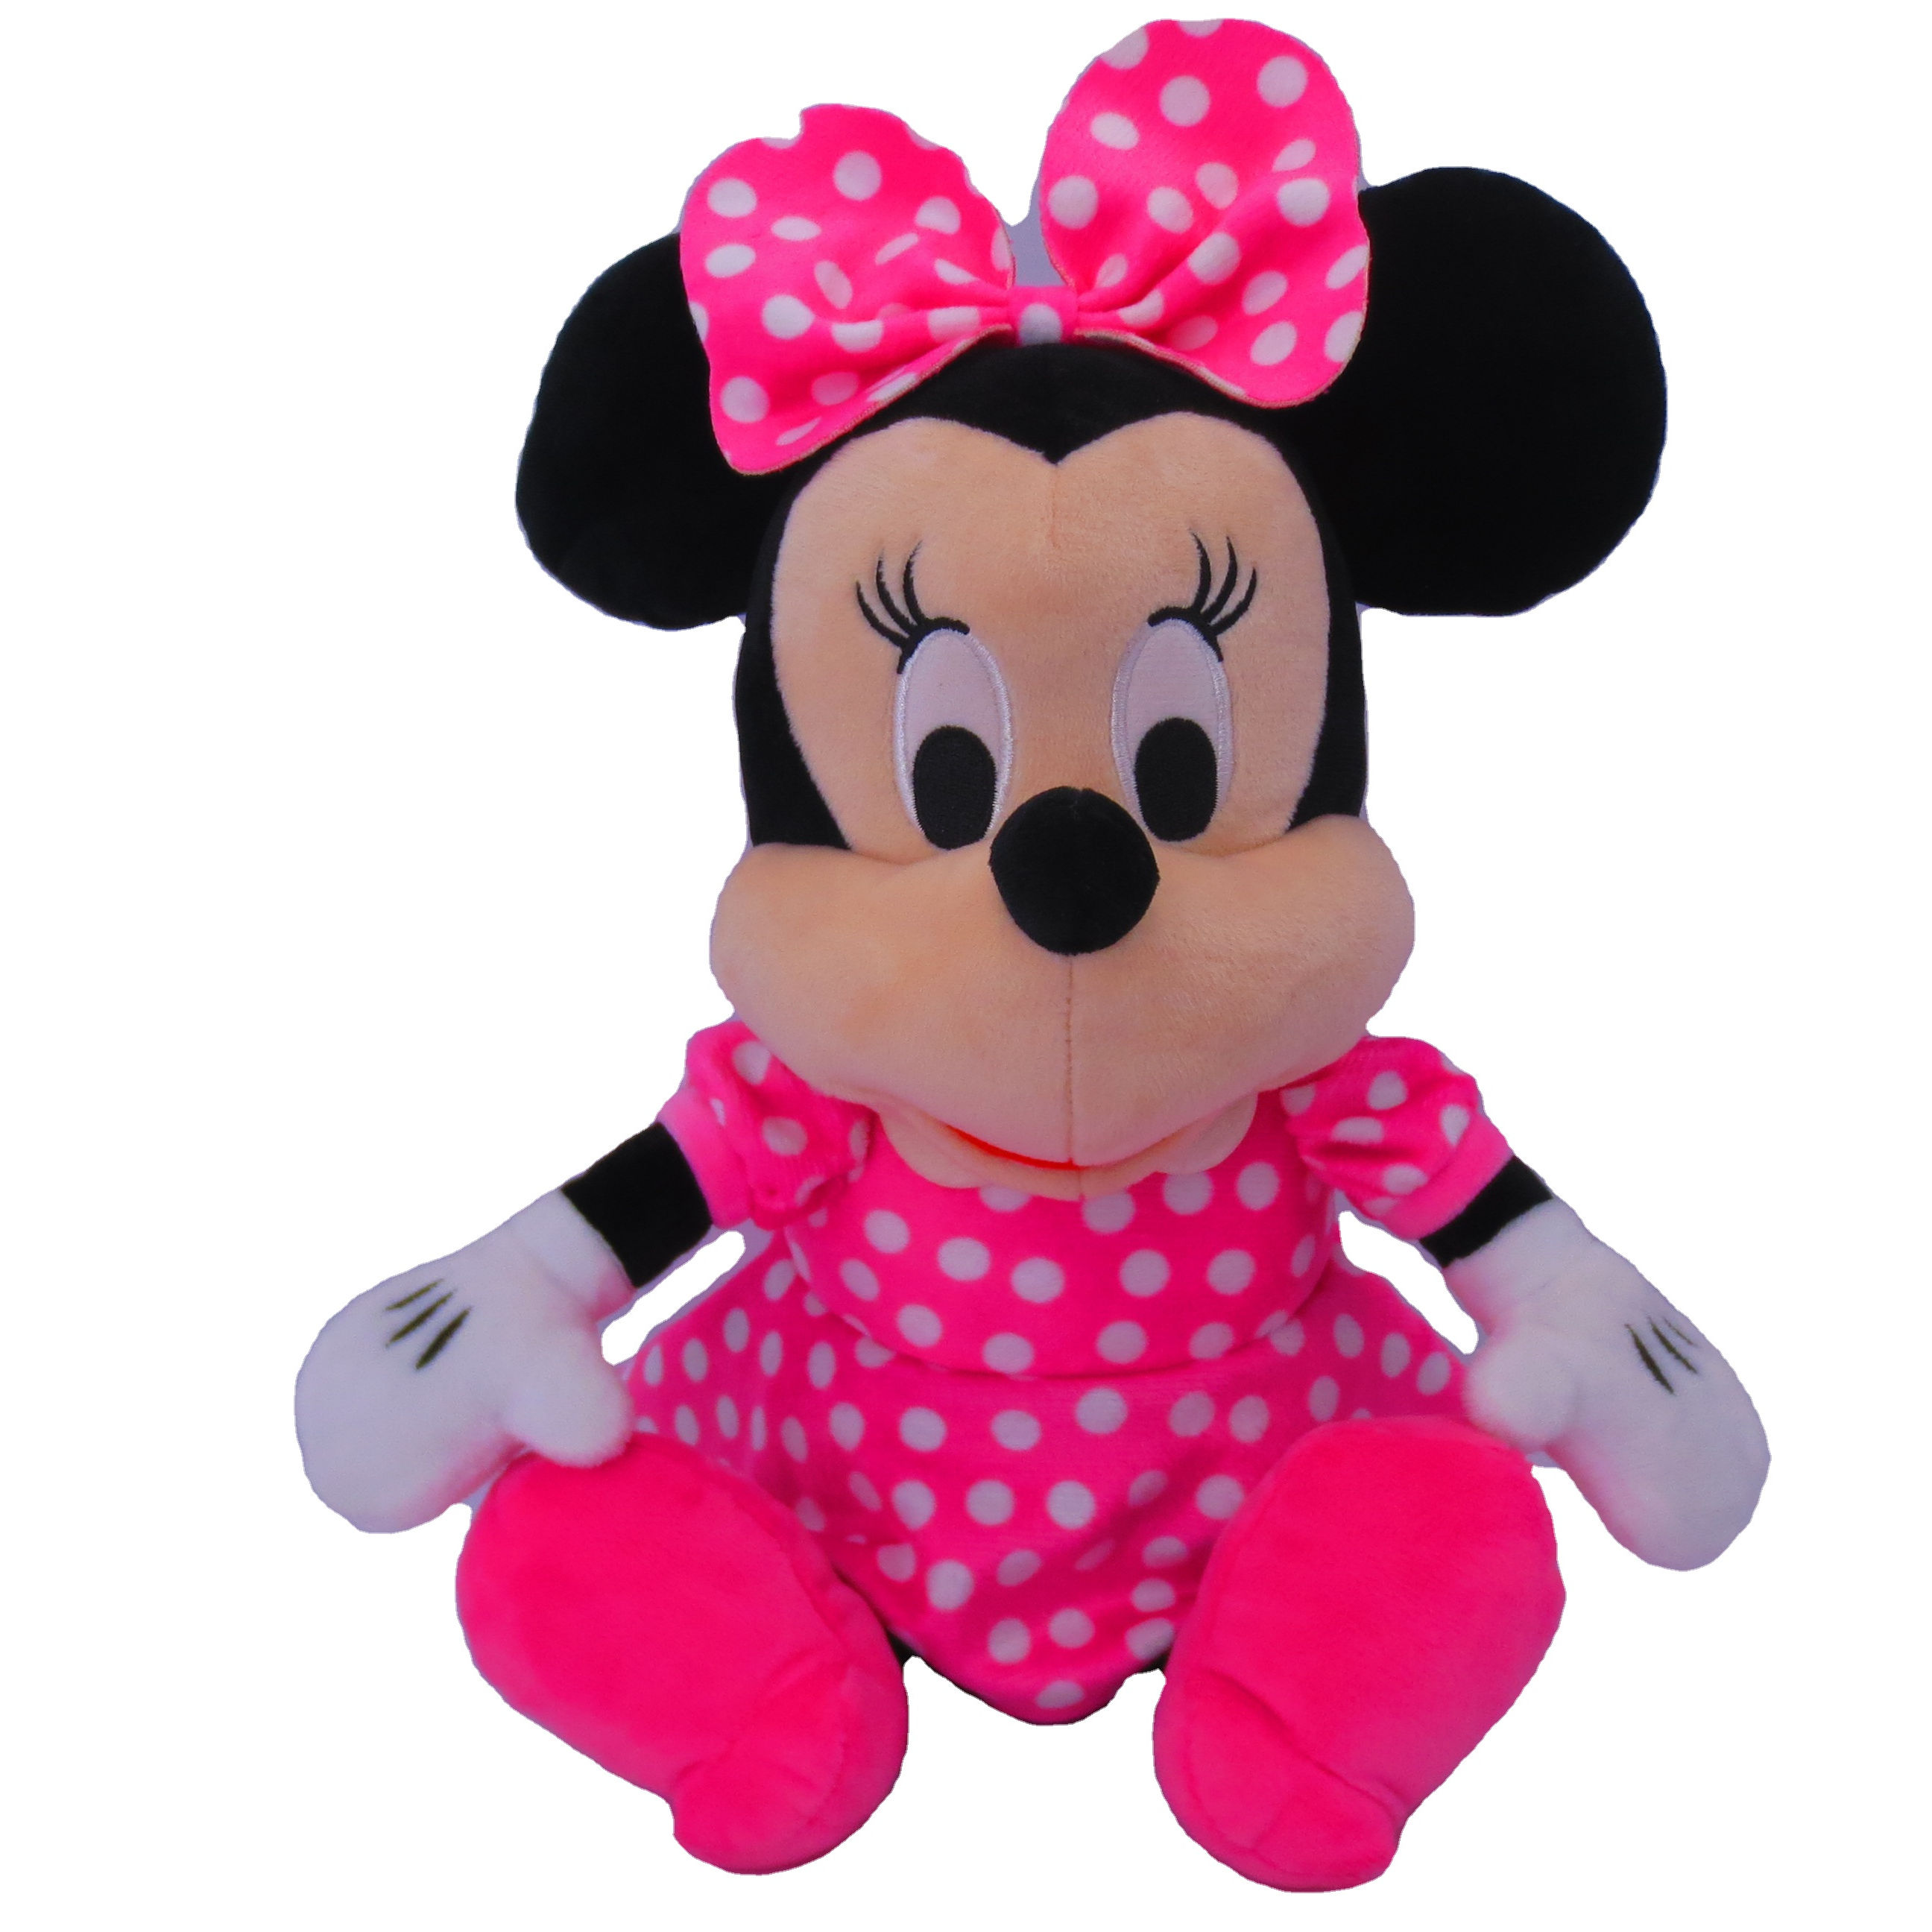 OEM all'ingrosso Peluche minnie <span class=keywords><strong>mouse</strong></span> Animale di Pezza Peluche Personalizzato per i bambini del <span class=keywords><strong>mouse</strong></span> della peluche